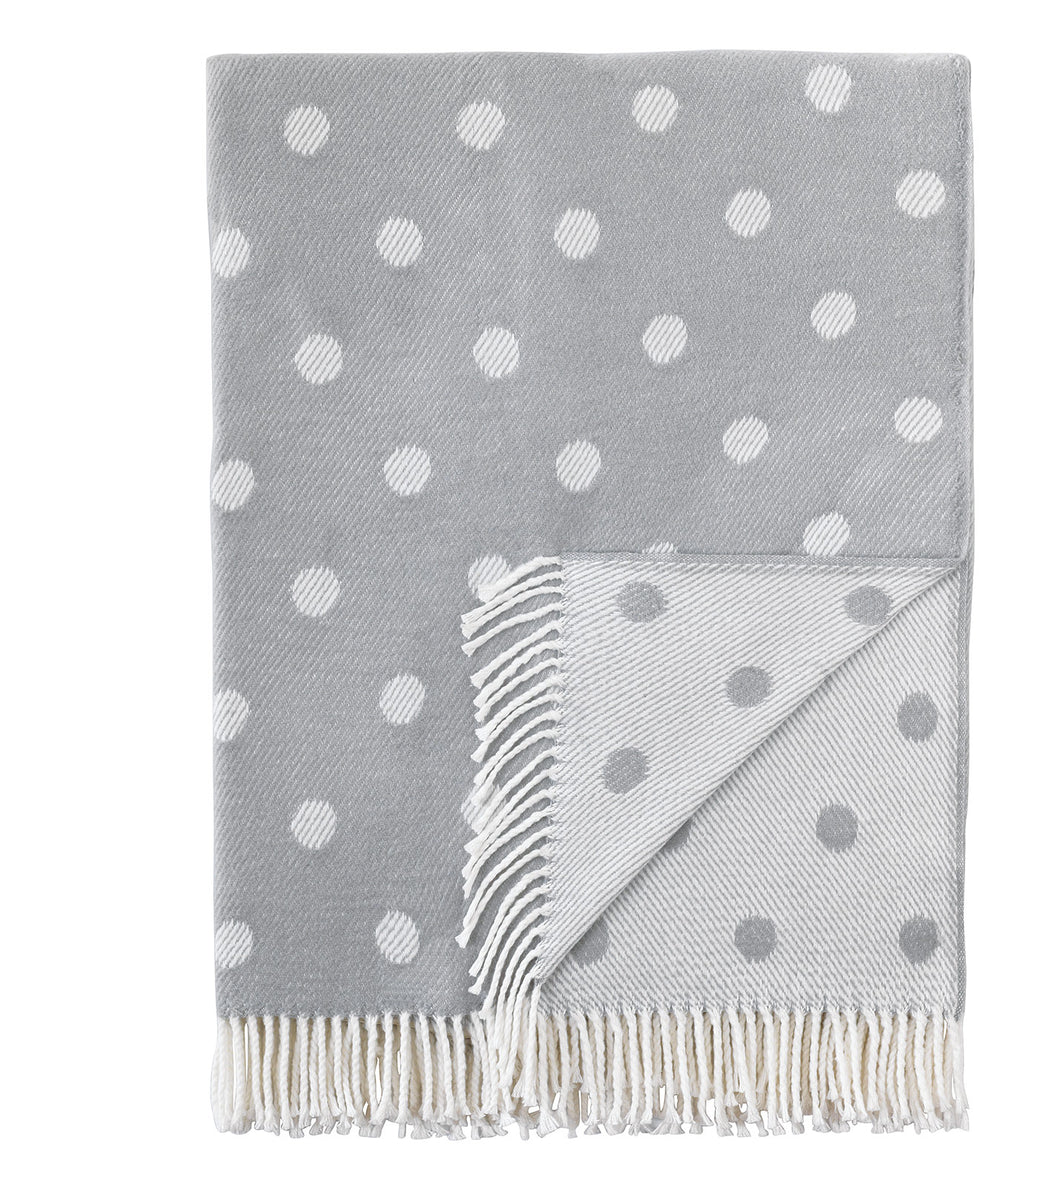 Light Gray Polka Dot Rustic Throw with Fringe